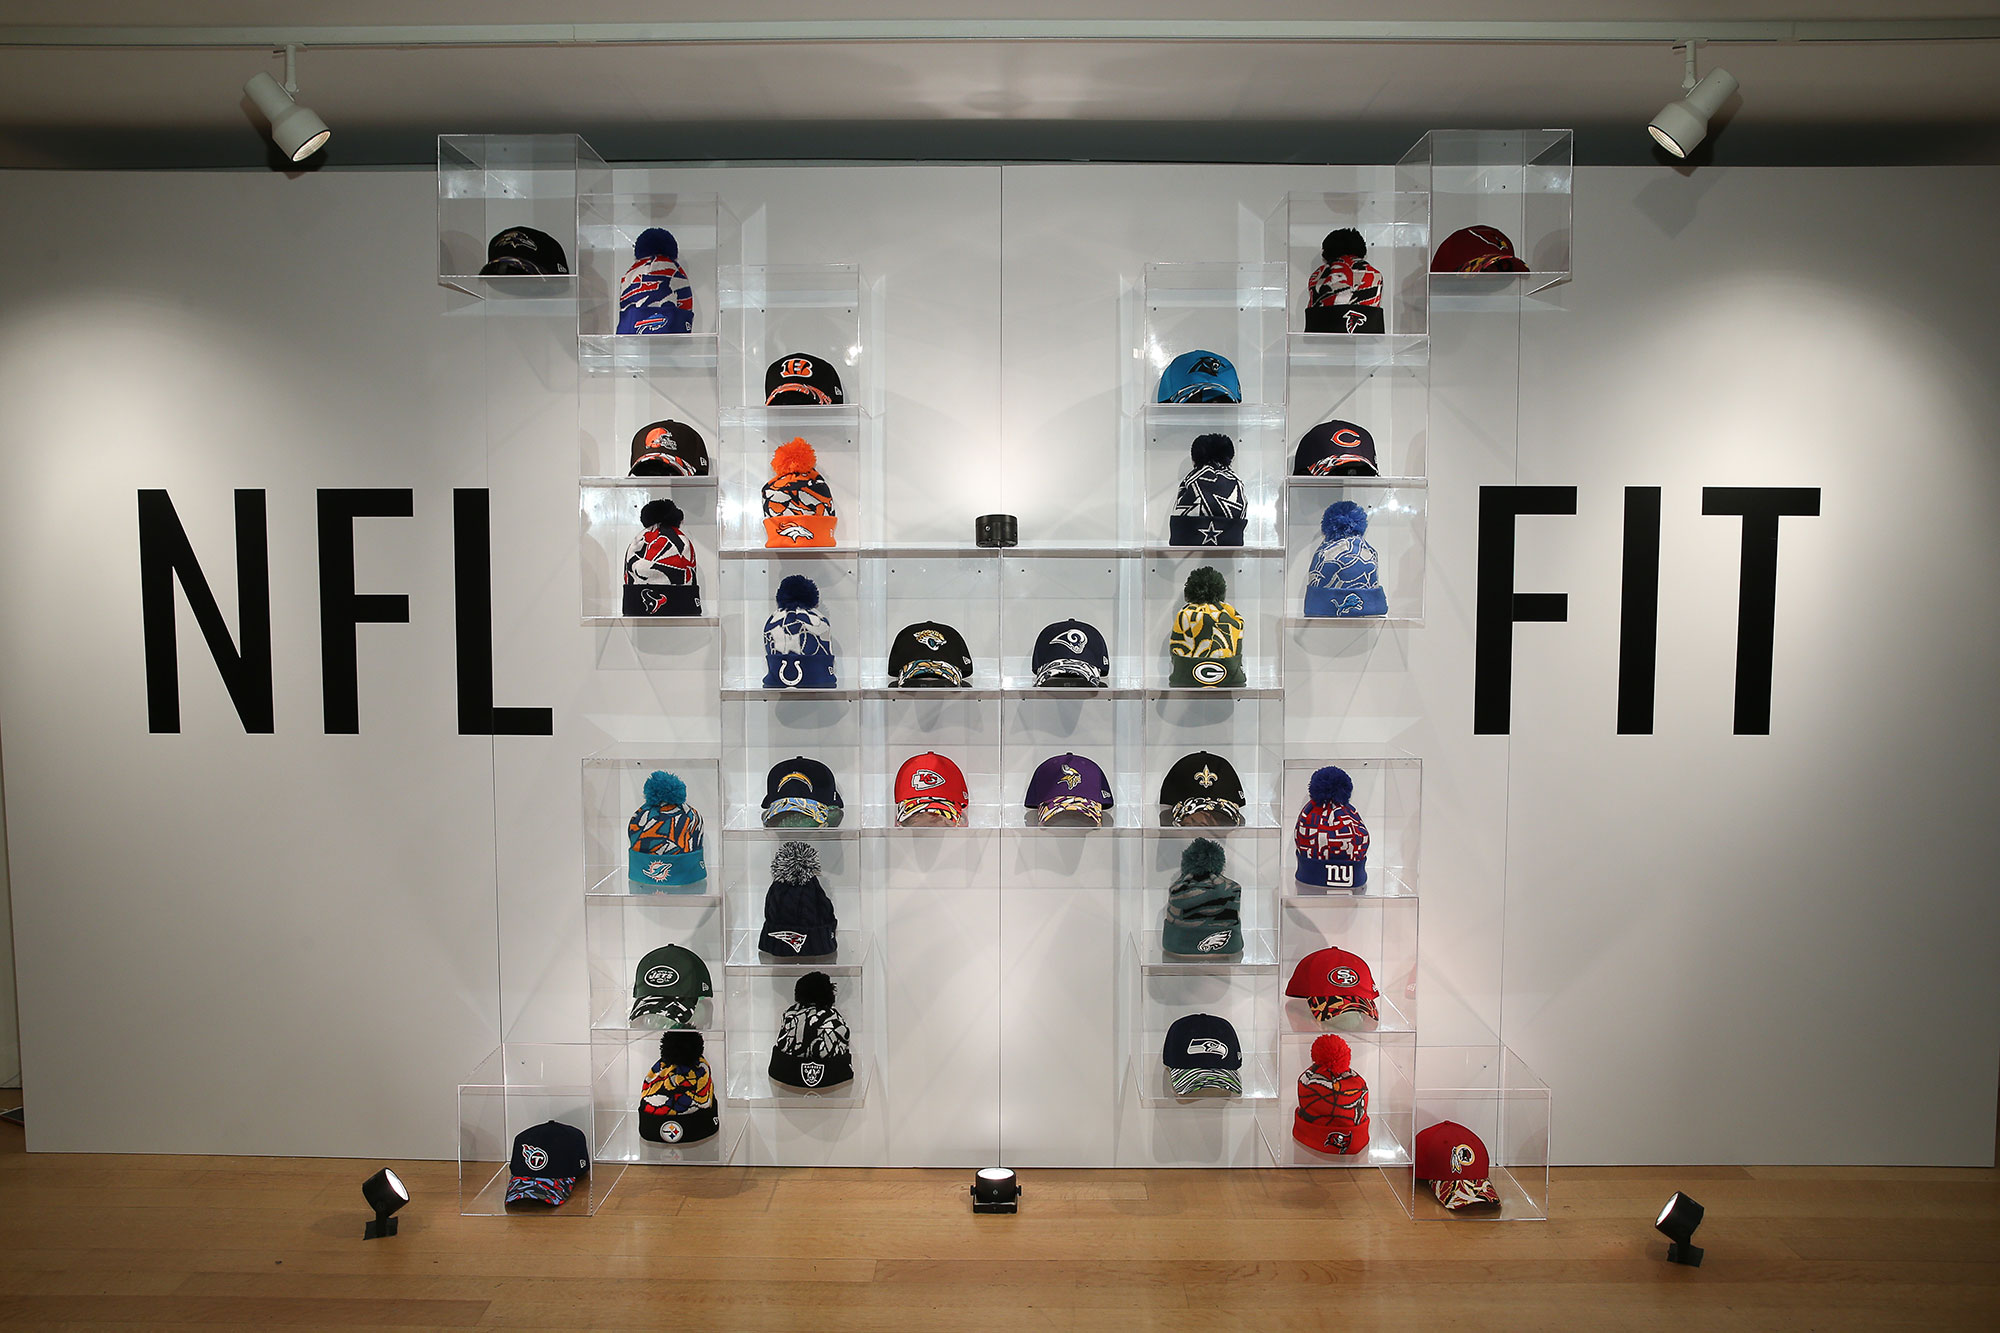 Hats of NFL teams set up in cases making an X to form NFL xFIT display.